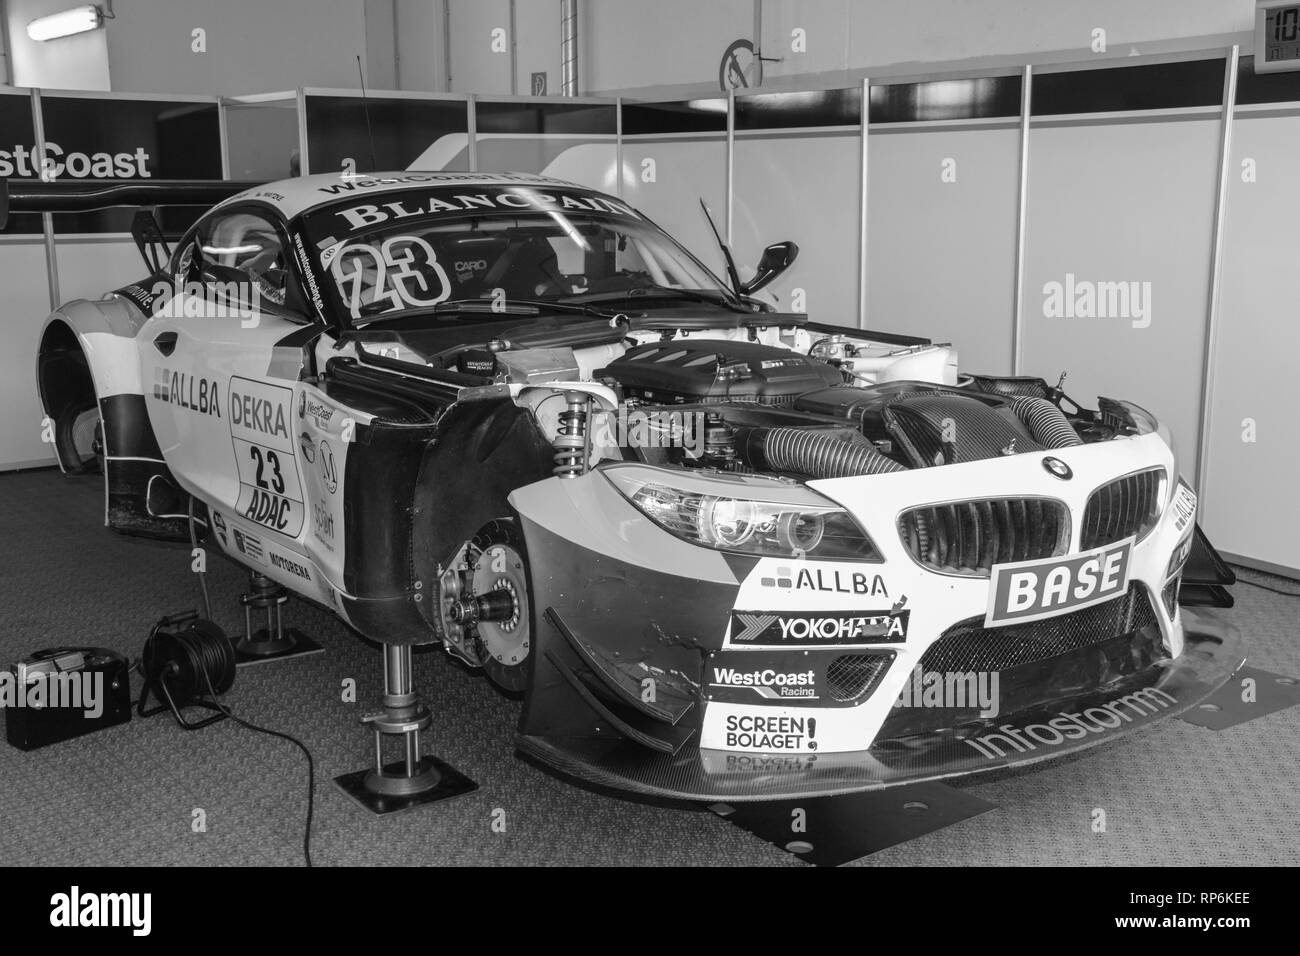 BMW Z4 GT3 race car in the box archival black & white photo edition - Stock Image